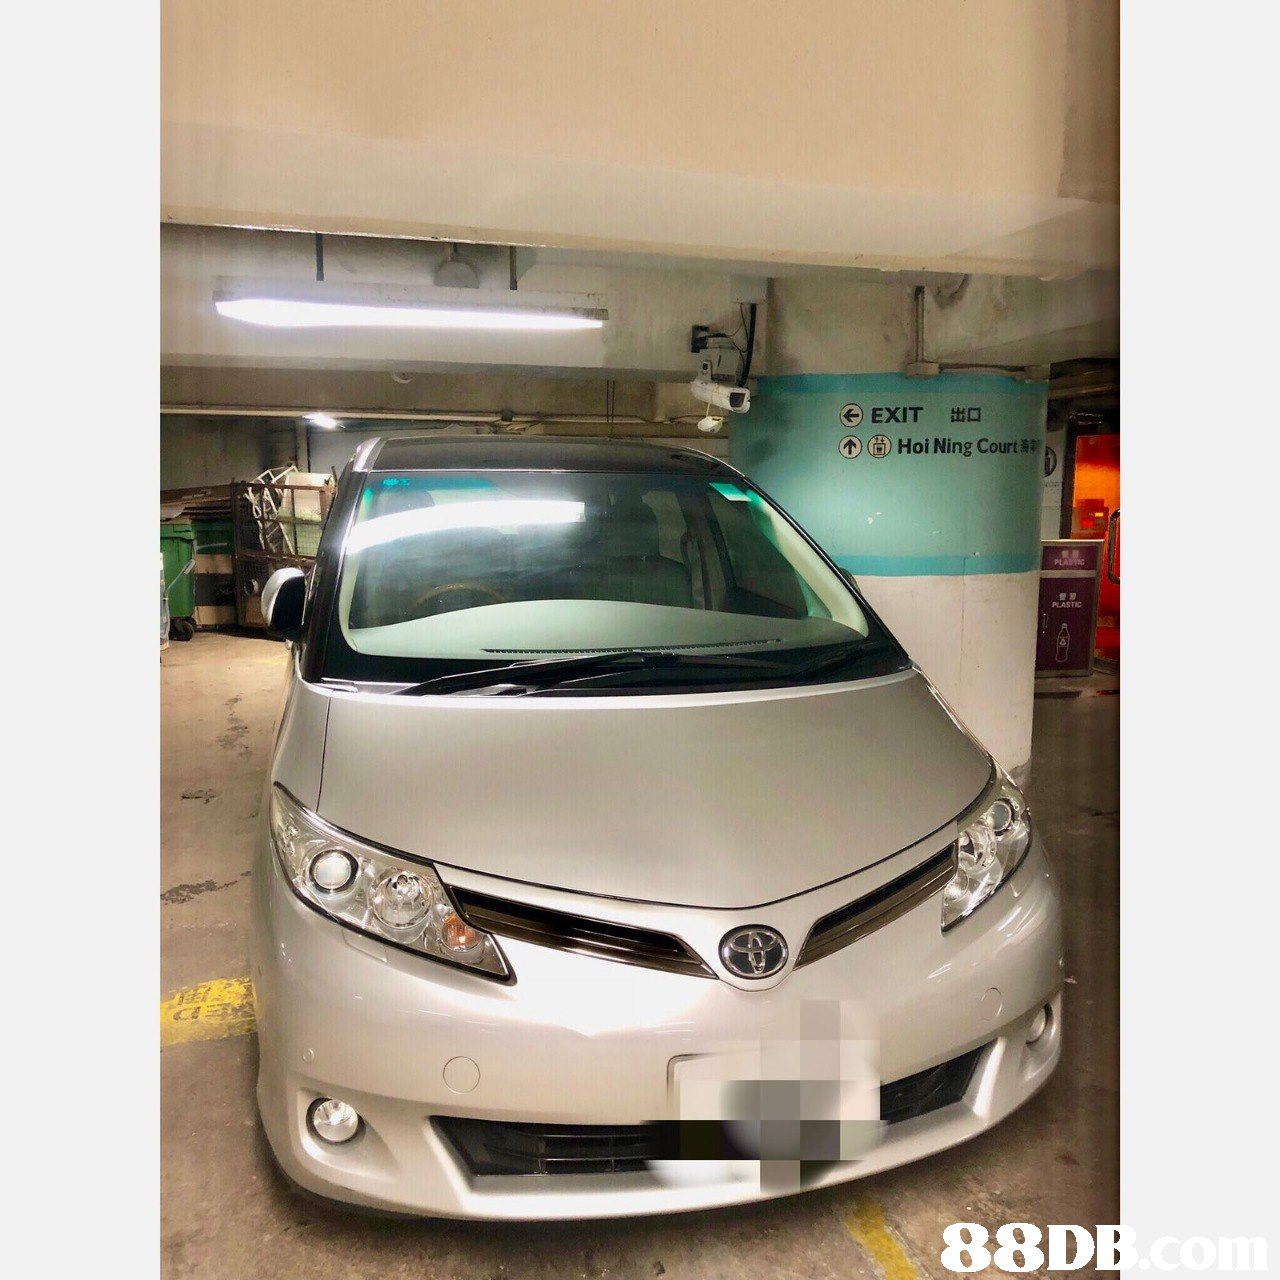 EXIT出口 ) Hoi Ning Court PLASTIC 88D  car